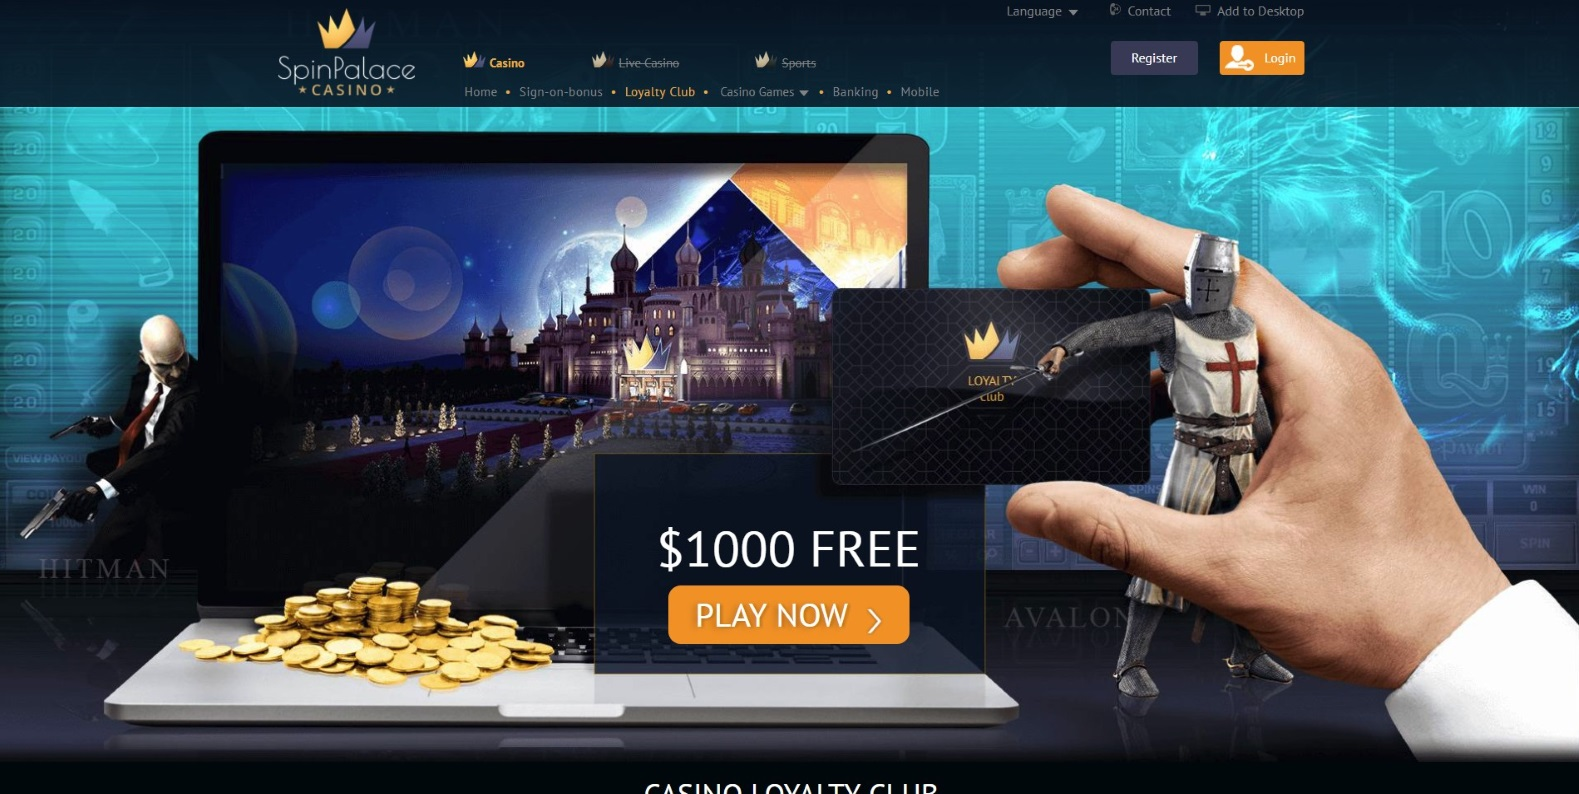 Casino Loyalty Club Page at Spin Palace